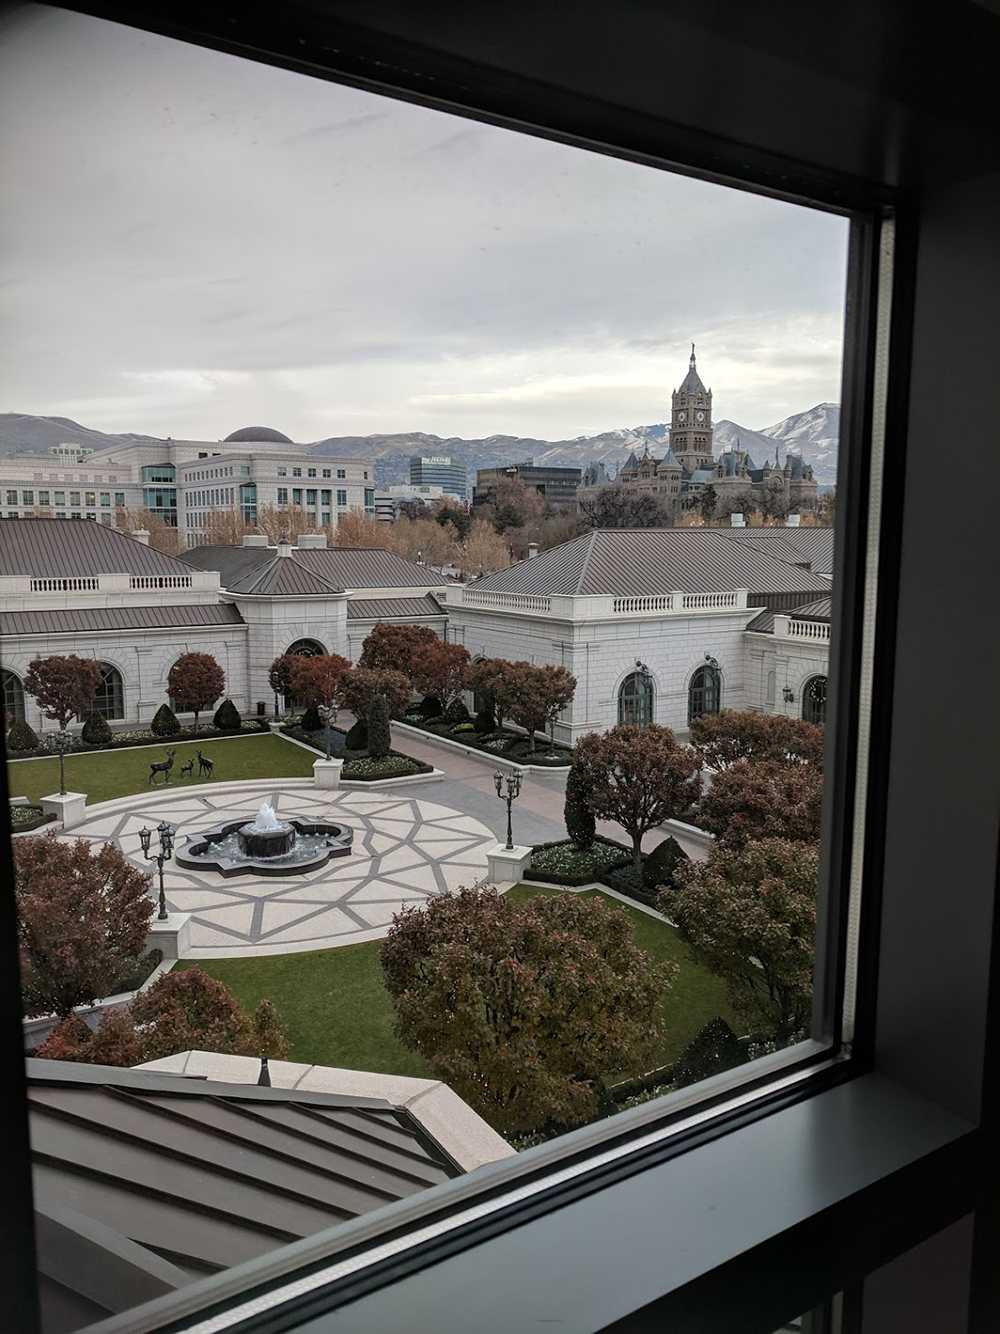 Beautiful views of the hotel's courtyard and the Utah mountains.